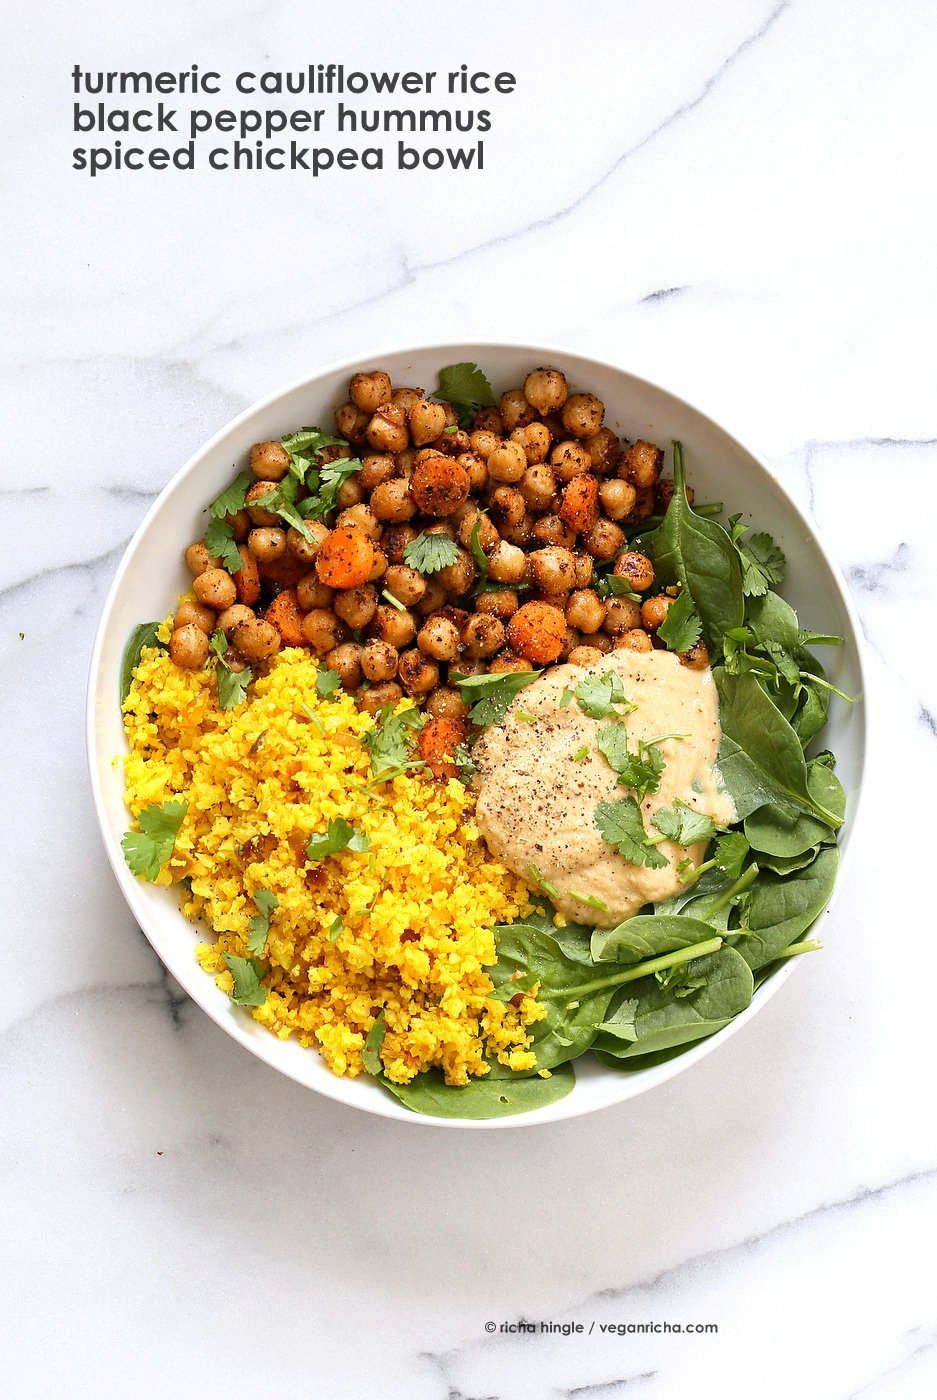 Spiced Chickpeas Turmeric Cauliflower Rice Buddha Bowl with Black Pepper Hummus. Amazing Flavors for any meal. Ready within 25 minutes. Vegan Gluten-free Soy-free Recipe | VeganRicha.com